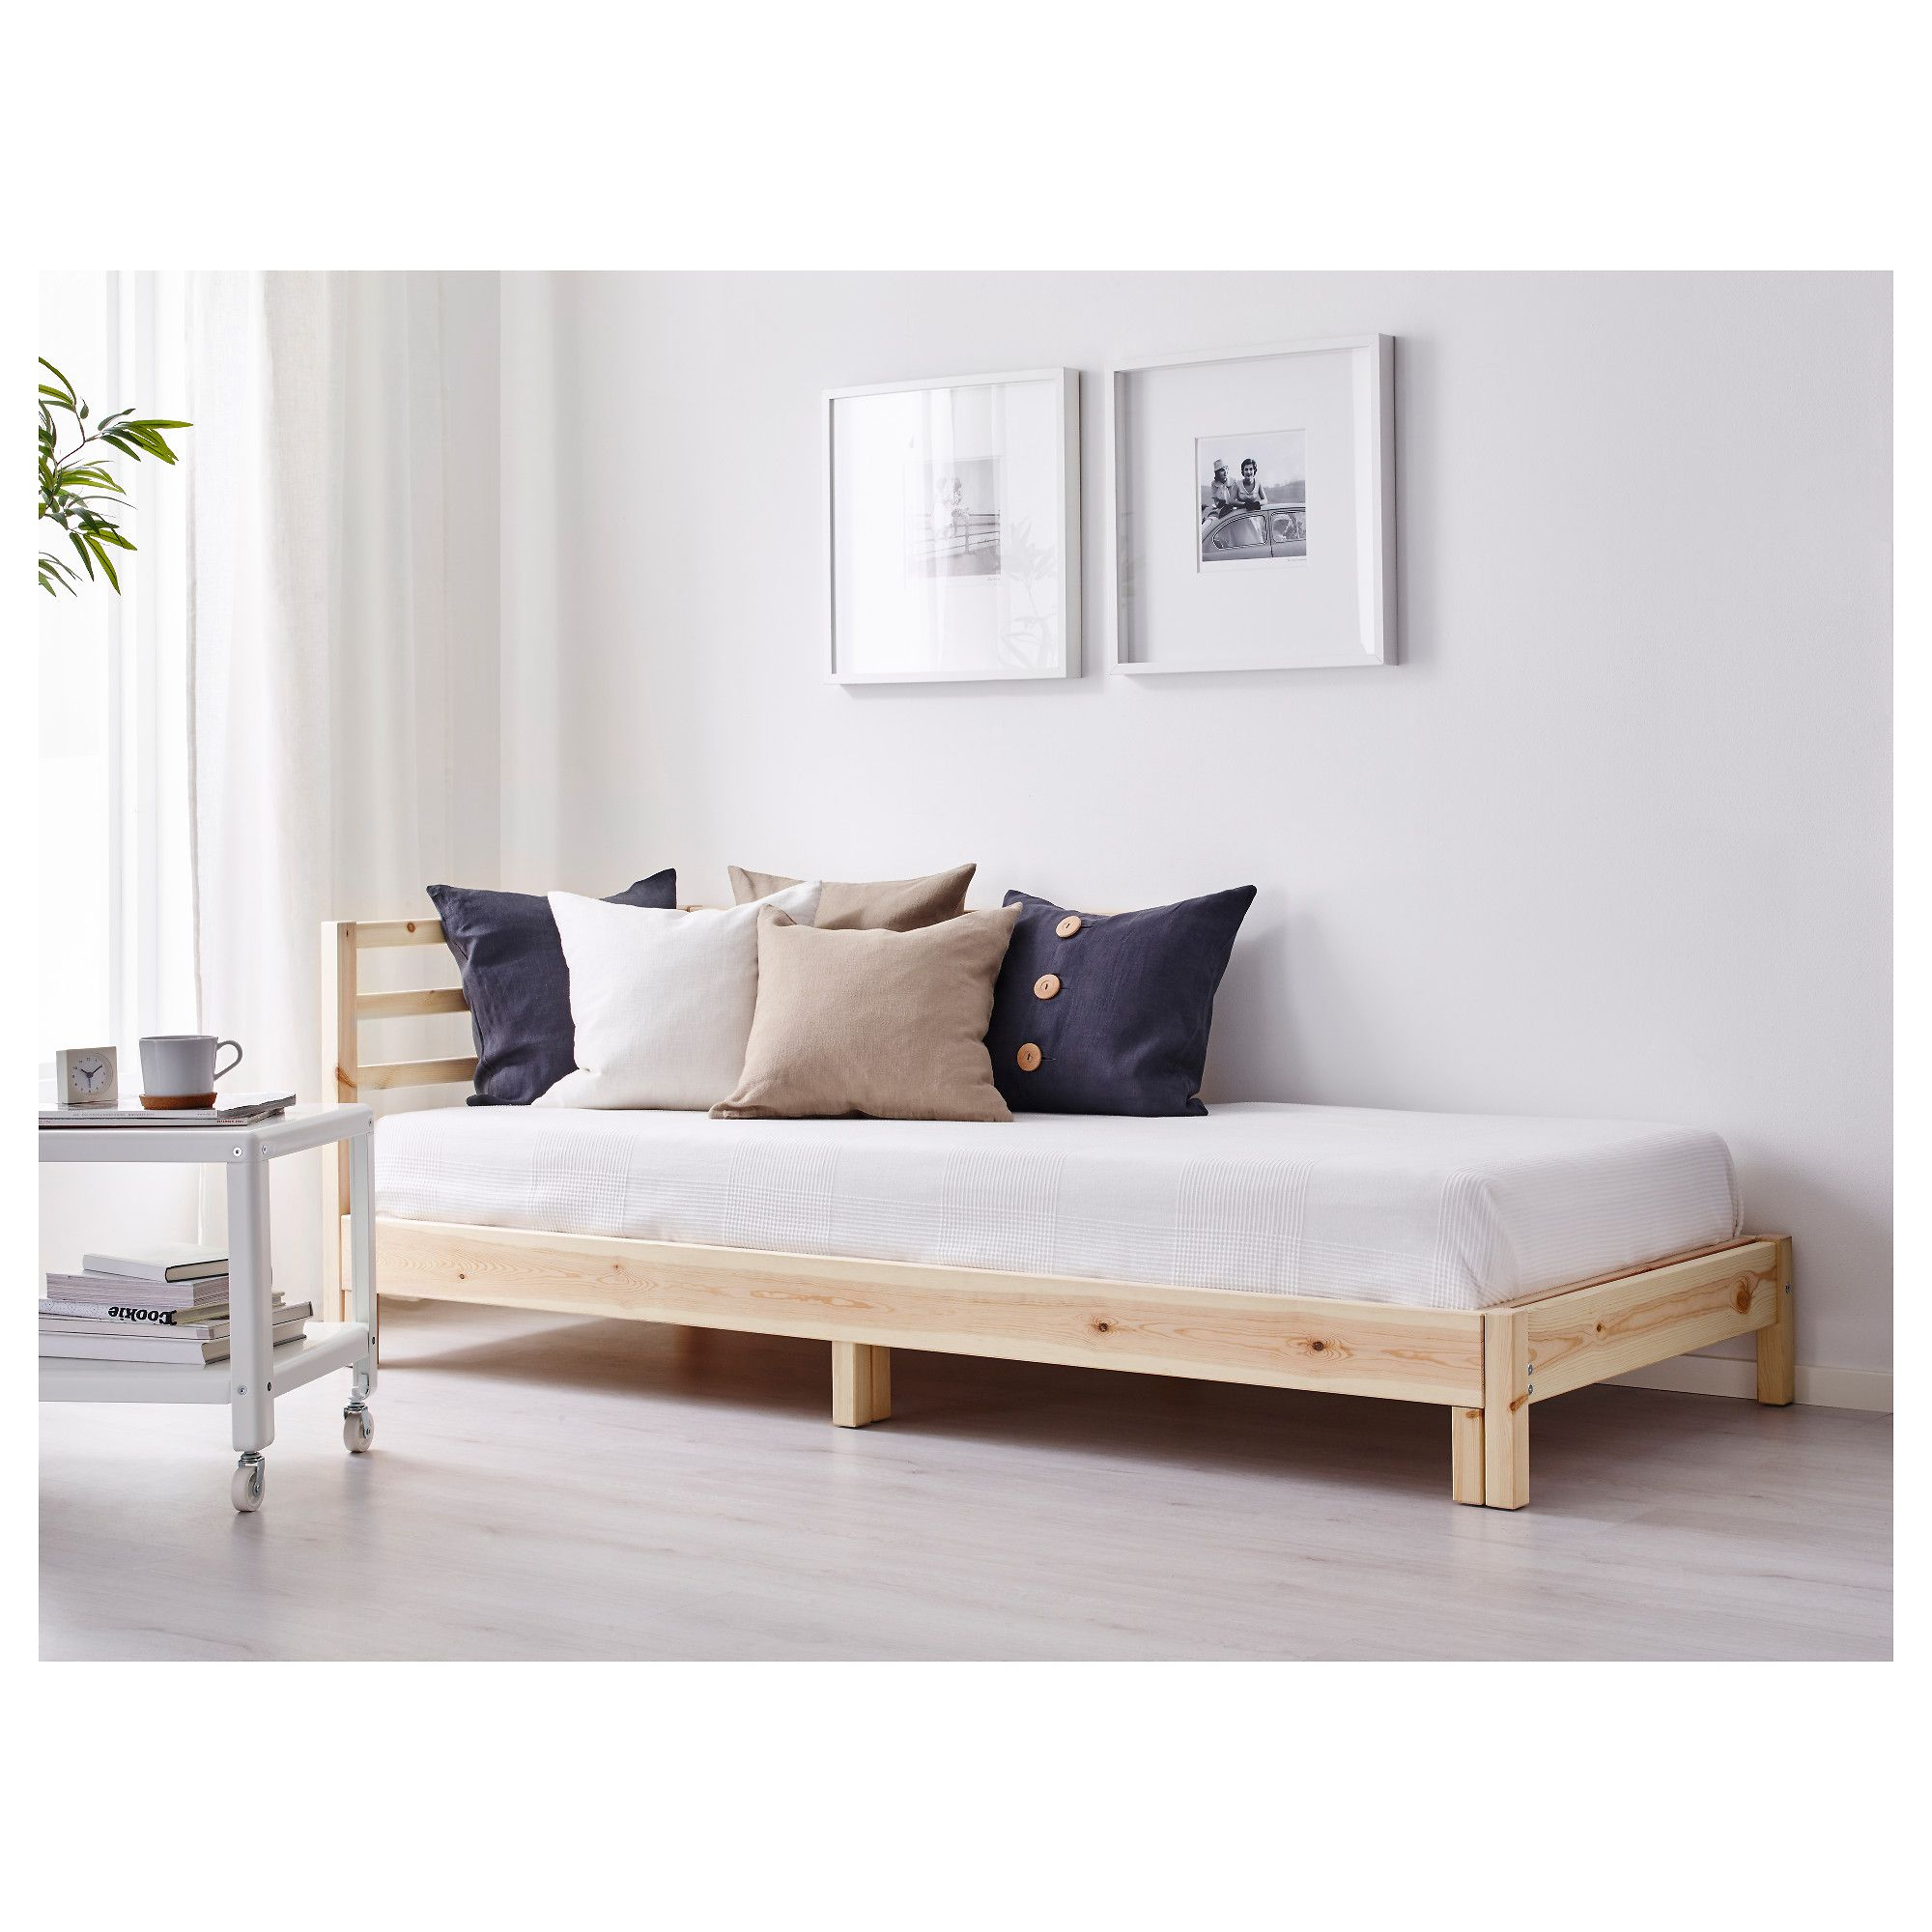 Fresh Home Furnishing Ideas And Affordable Furniture Sofa Bed Design Day Bed Frame Murphy Bed Ikea